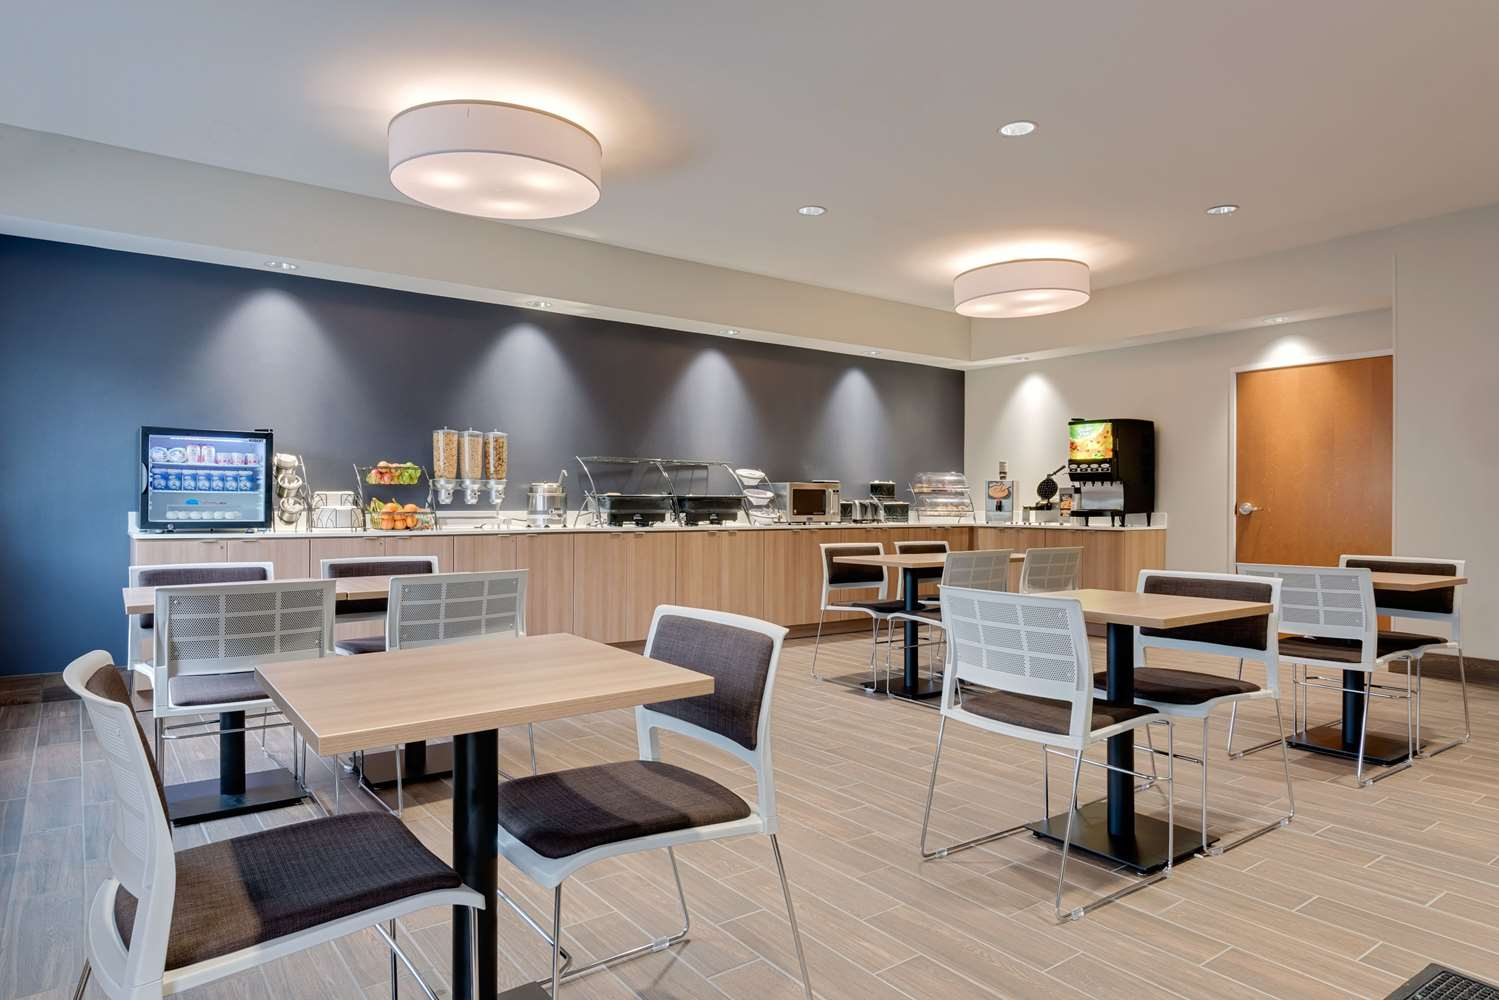 proam - Microtel Inn & Suites by Wyndham Clarion